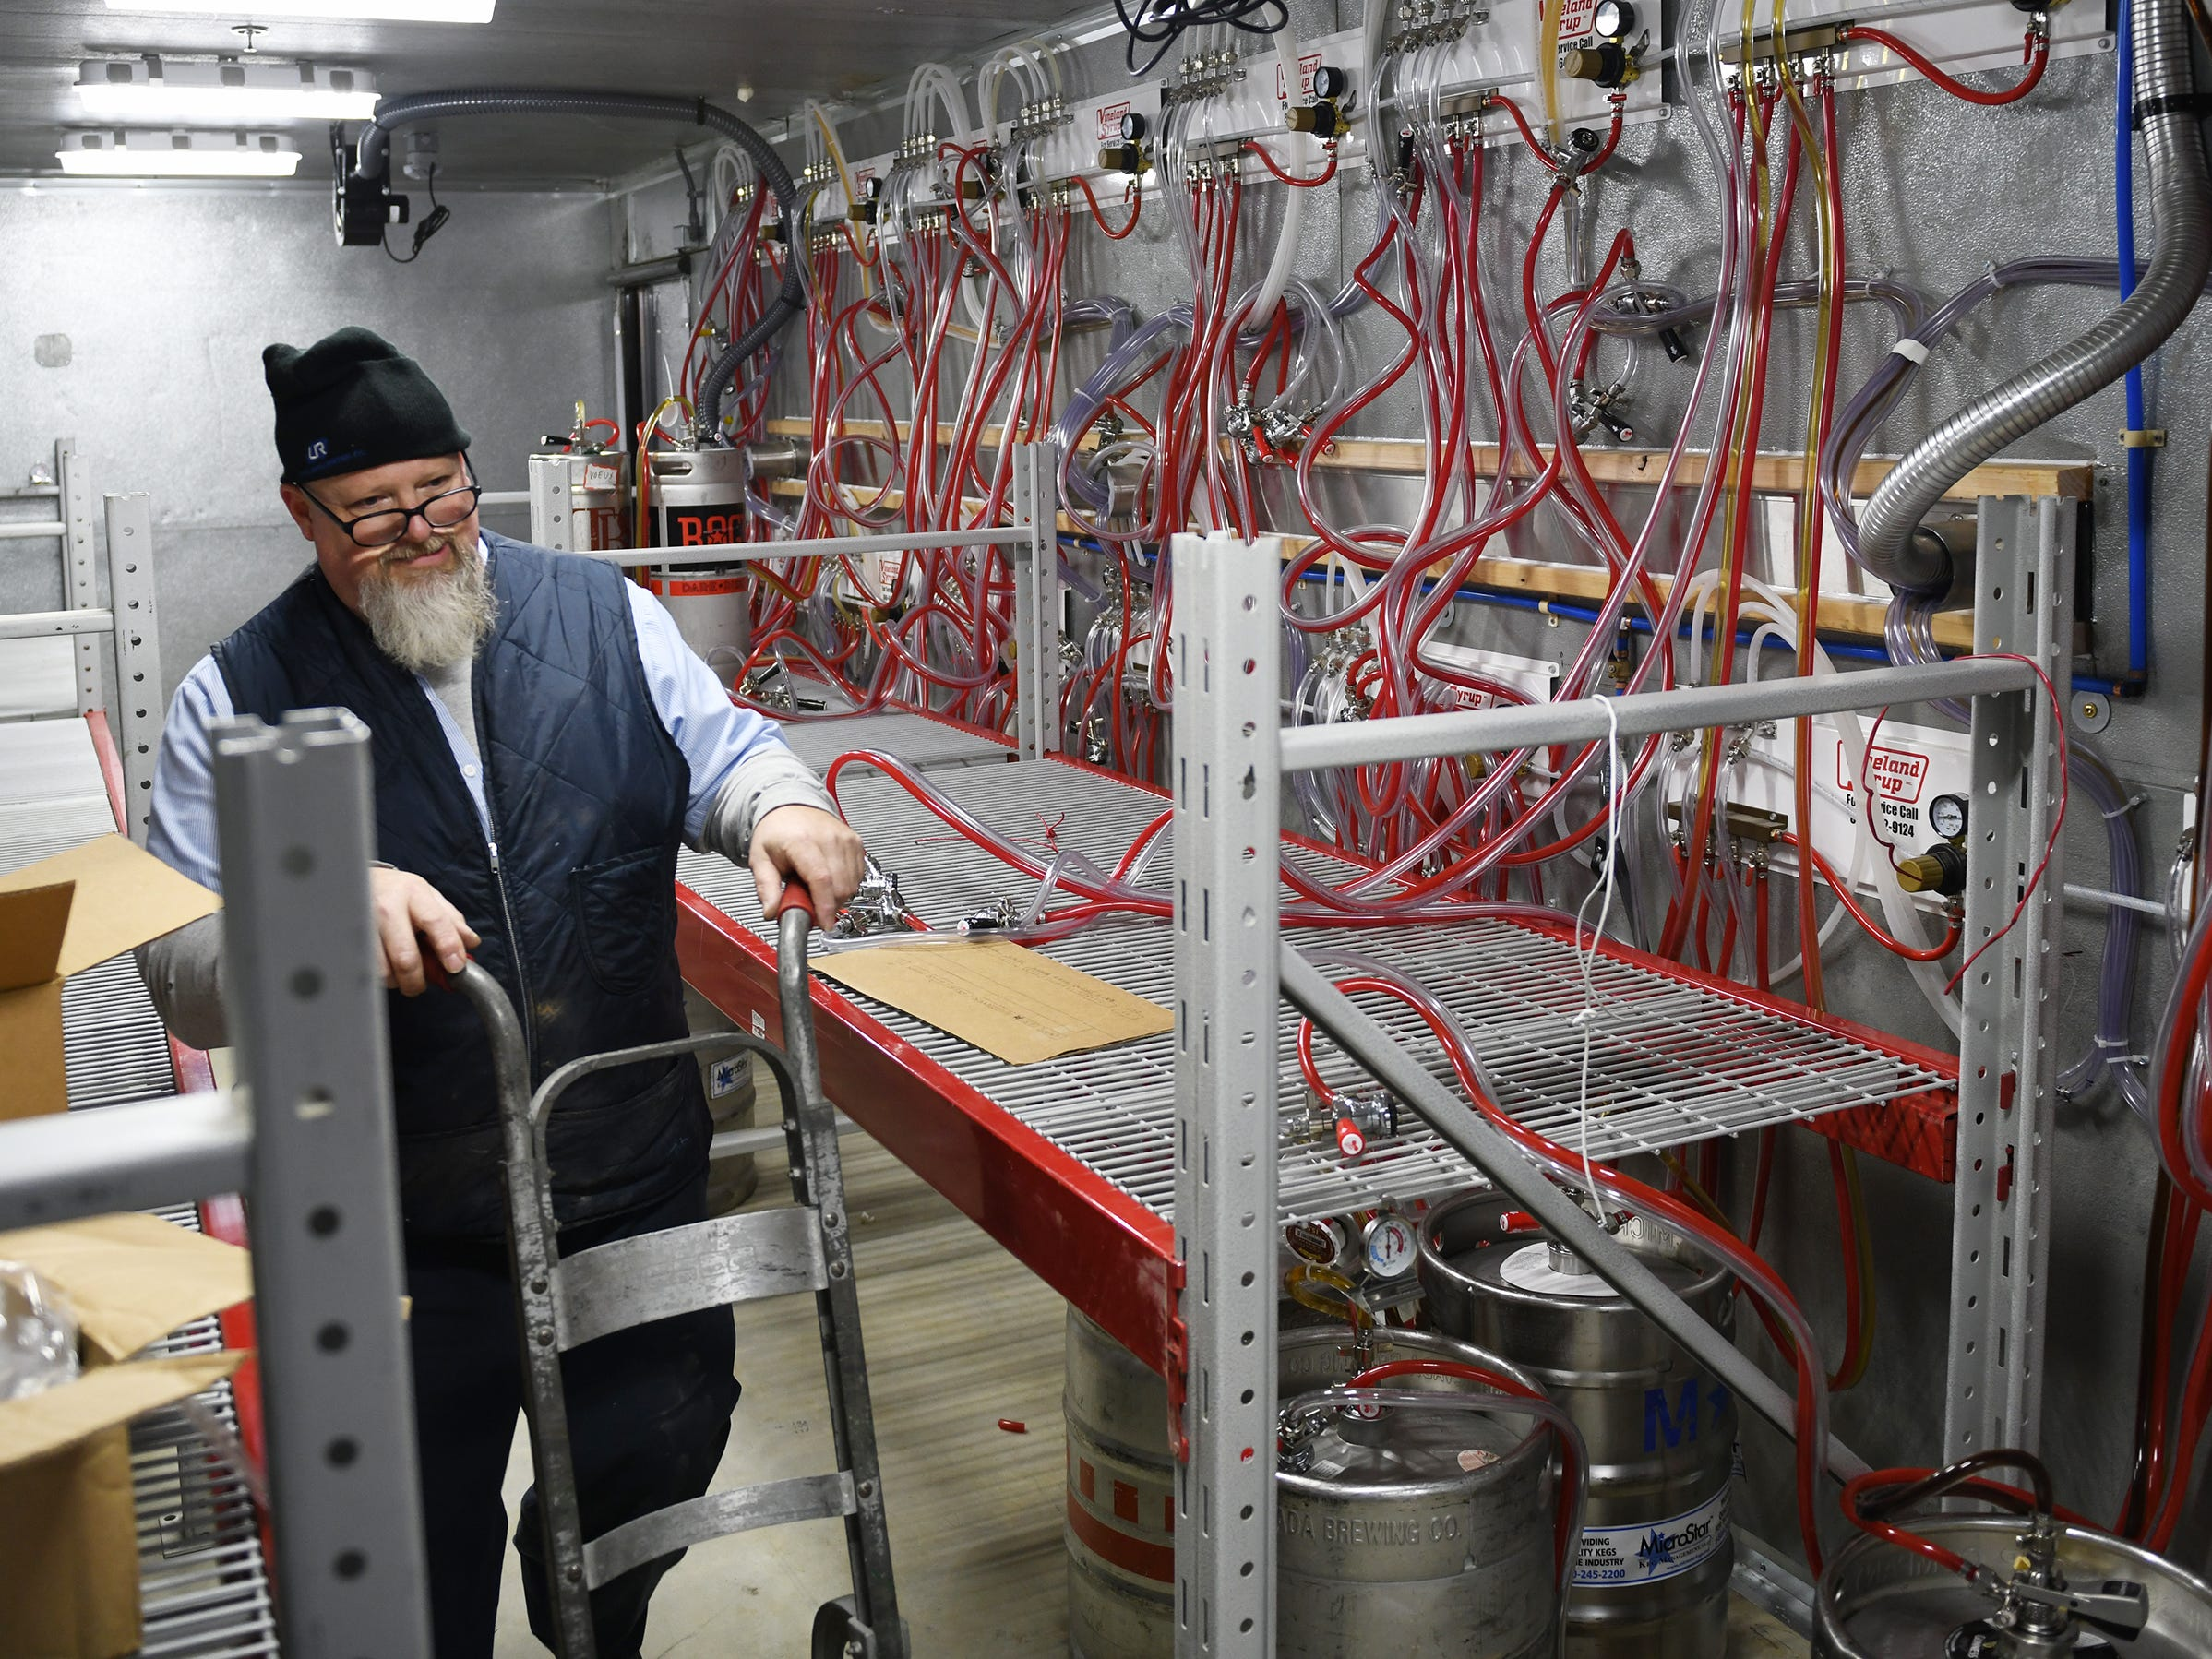 Mark Wendling, service technician for Vineland Syrup, works on getting a large selection of craft beers flowing at The Brass Tap in Vineland on Monday, Jan. 8. 2019.